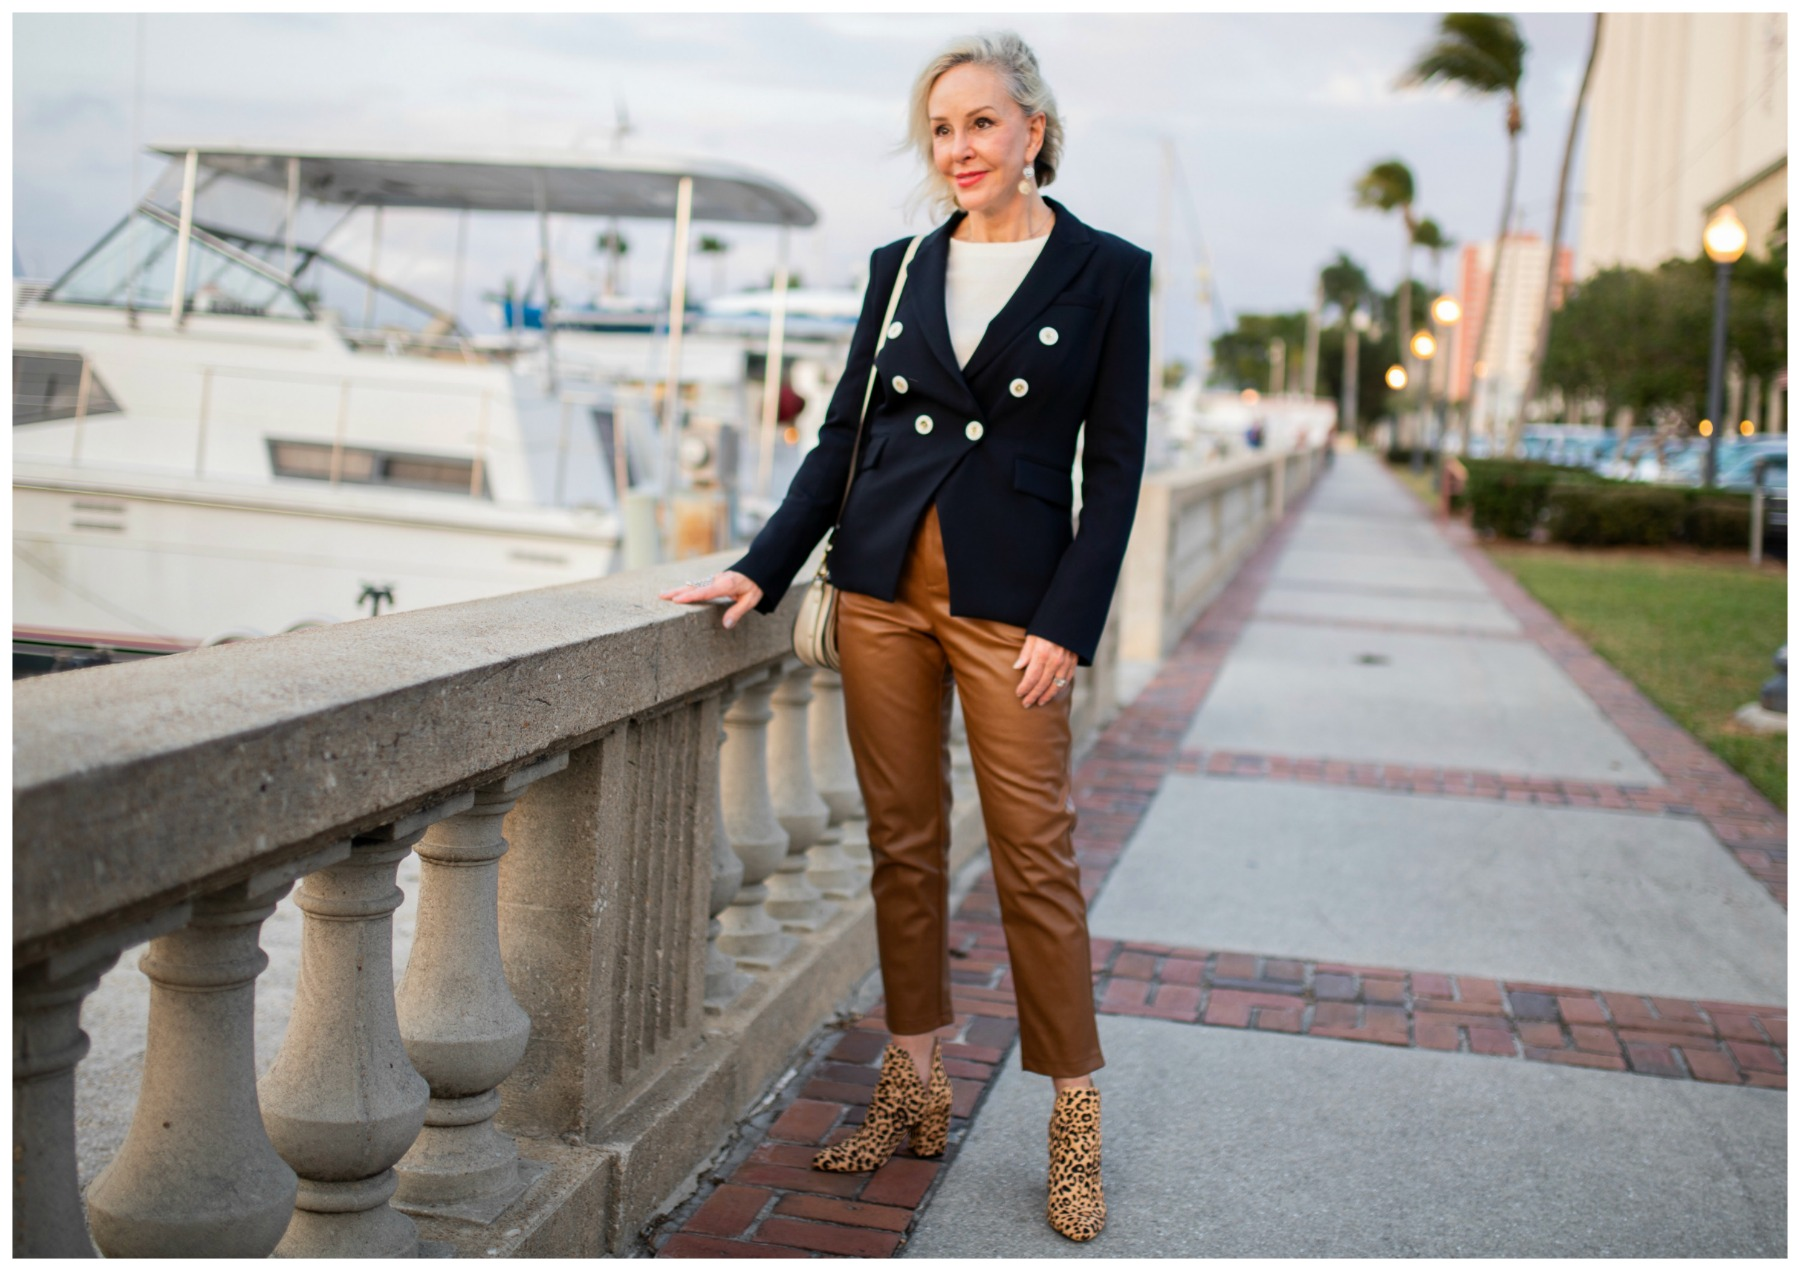 Styling Blazers Over 40, Sheree from SheShe Show wearing a double breasted blazer with whtie top, cognac faux leather pants, and leopard booties